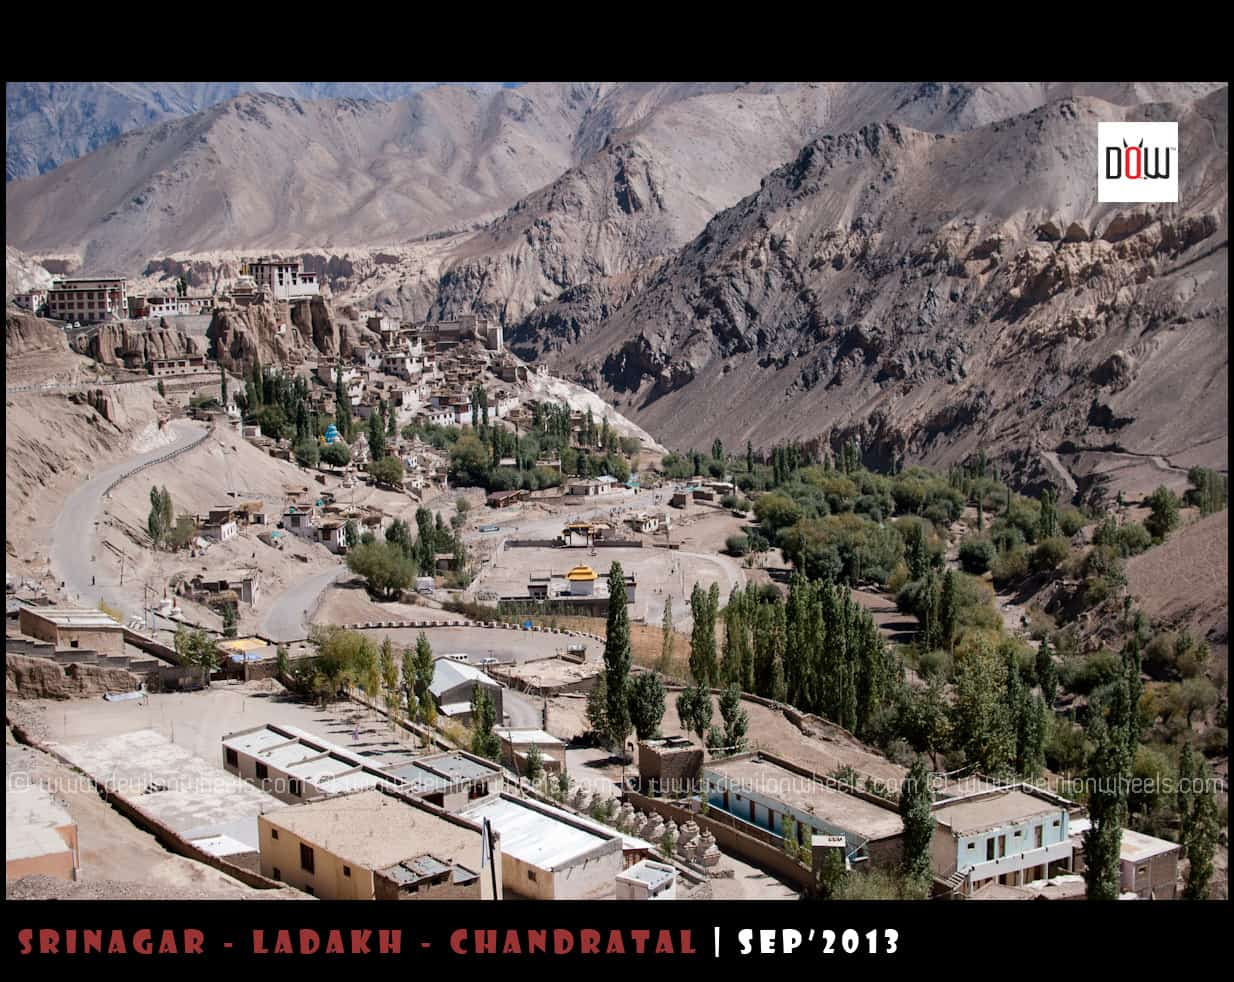 Lamayuru town as seen from Srinagar - Leh Highway